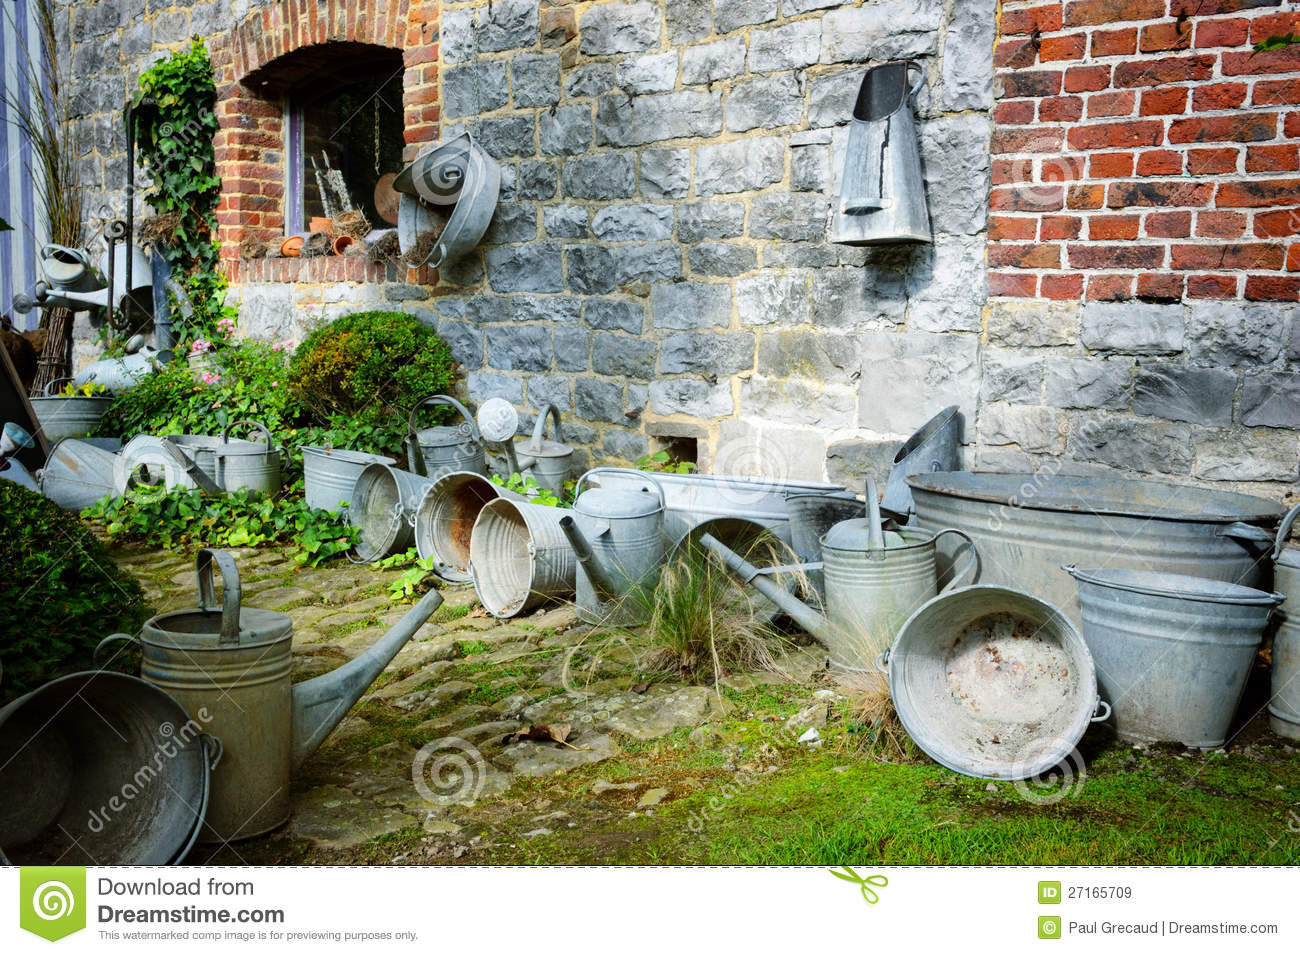 Vintage Backyard Garden : Vintage Backyard With Gardening Tools Royalty Free Stock Images